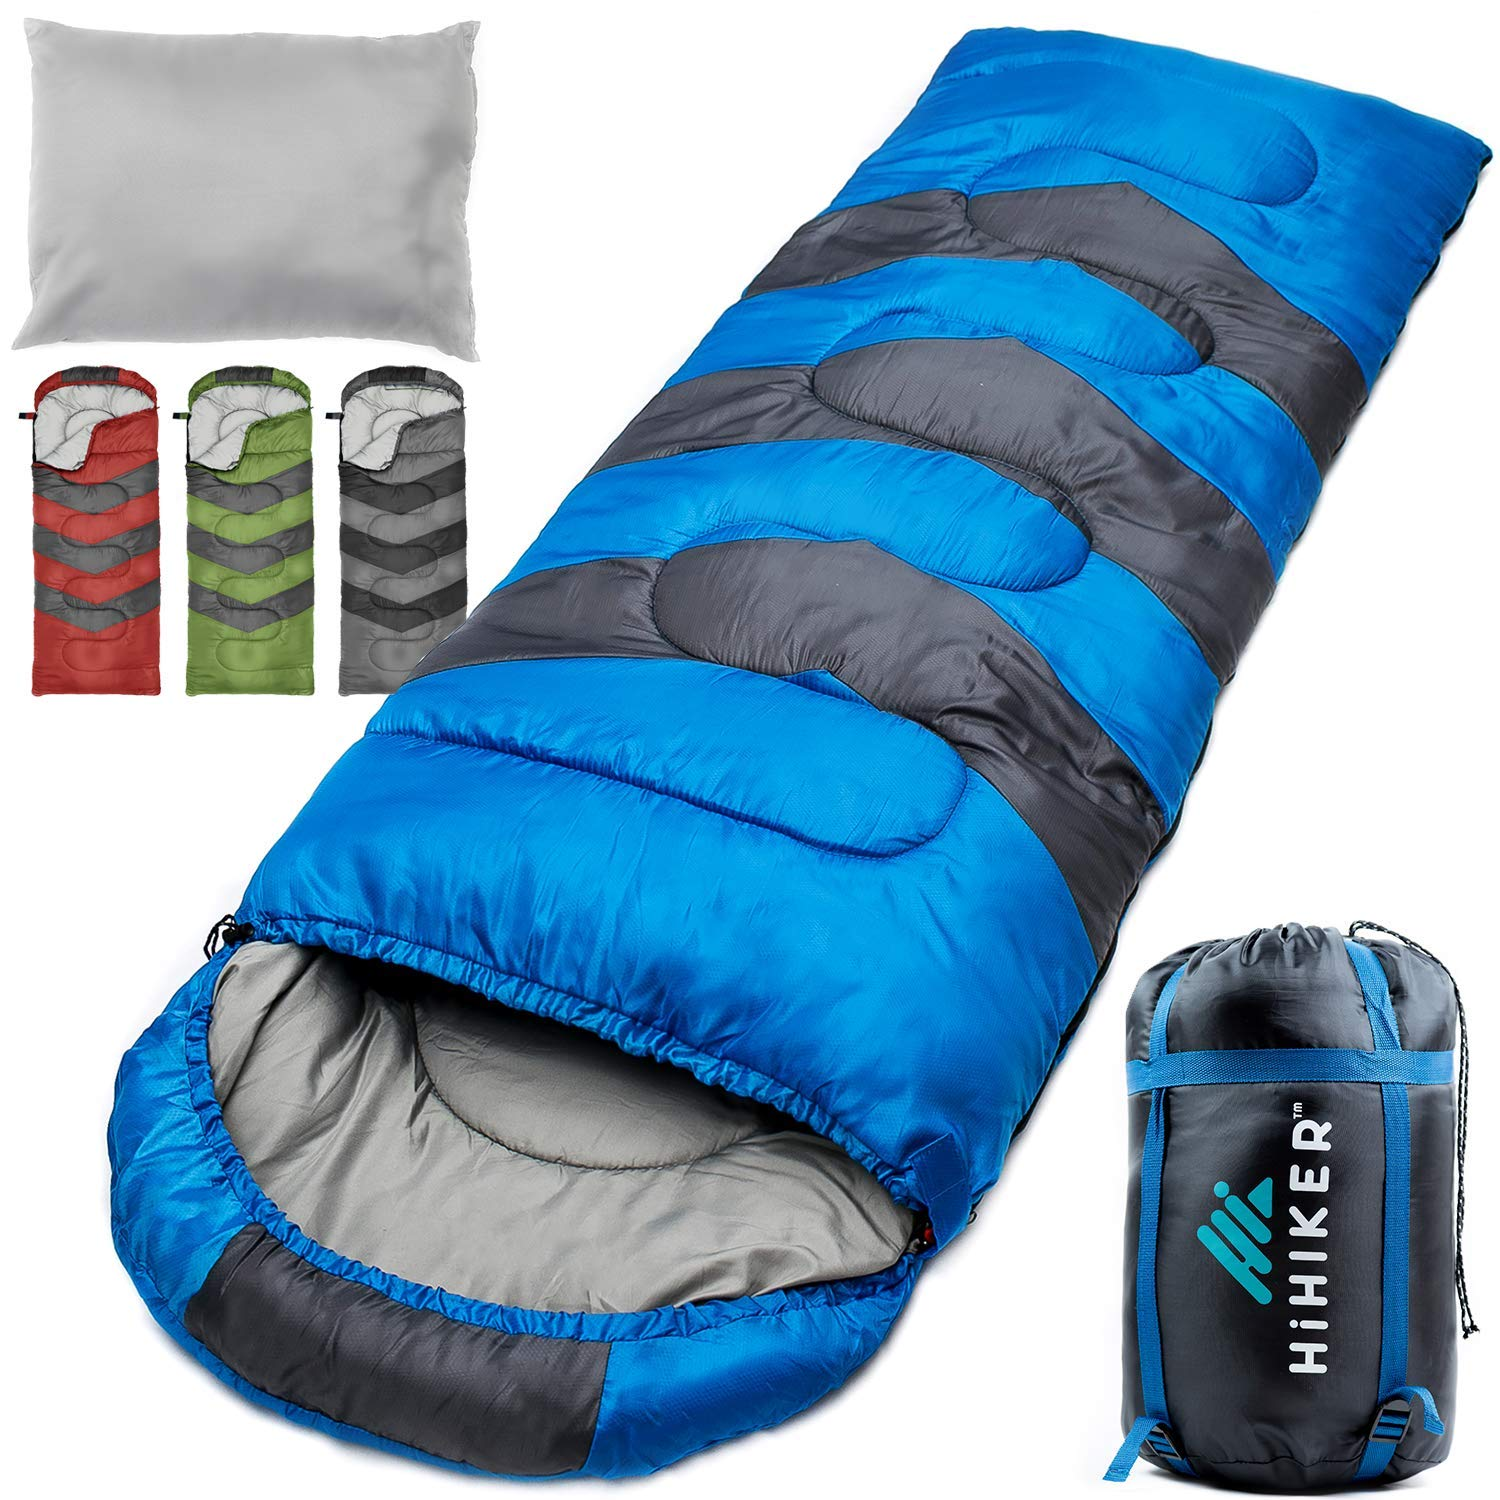 HiHiker Camping Sleeping Bag + Travel Pillow w/Compact Compression Sack - 4 Season Sleeping Bag for Adults & Kids - Lightweight Warm and Washable, for Hiking Traveling & Outdoor Activities (Blue) by HiHiker